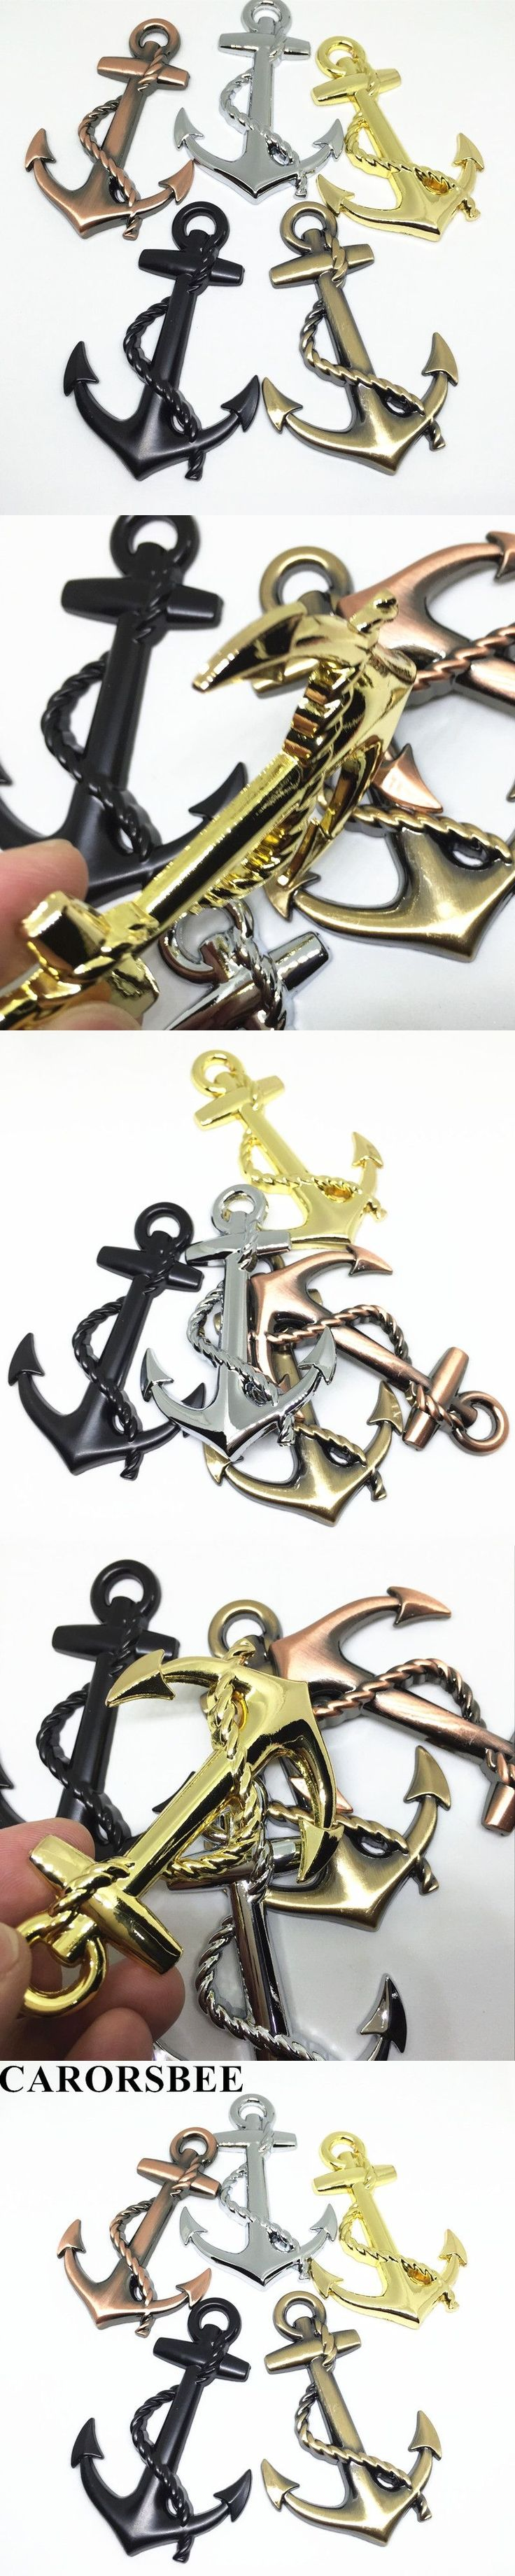 CARORSBEE 3D Zinc alloy metal Cool Boat Anchor Chrome Emblem Badge Decal cross rope car styling pirates One piece Car stickers #coolboataccessories